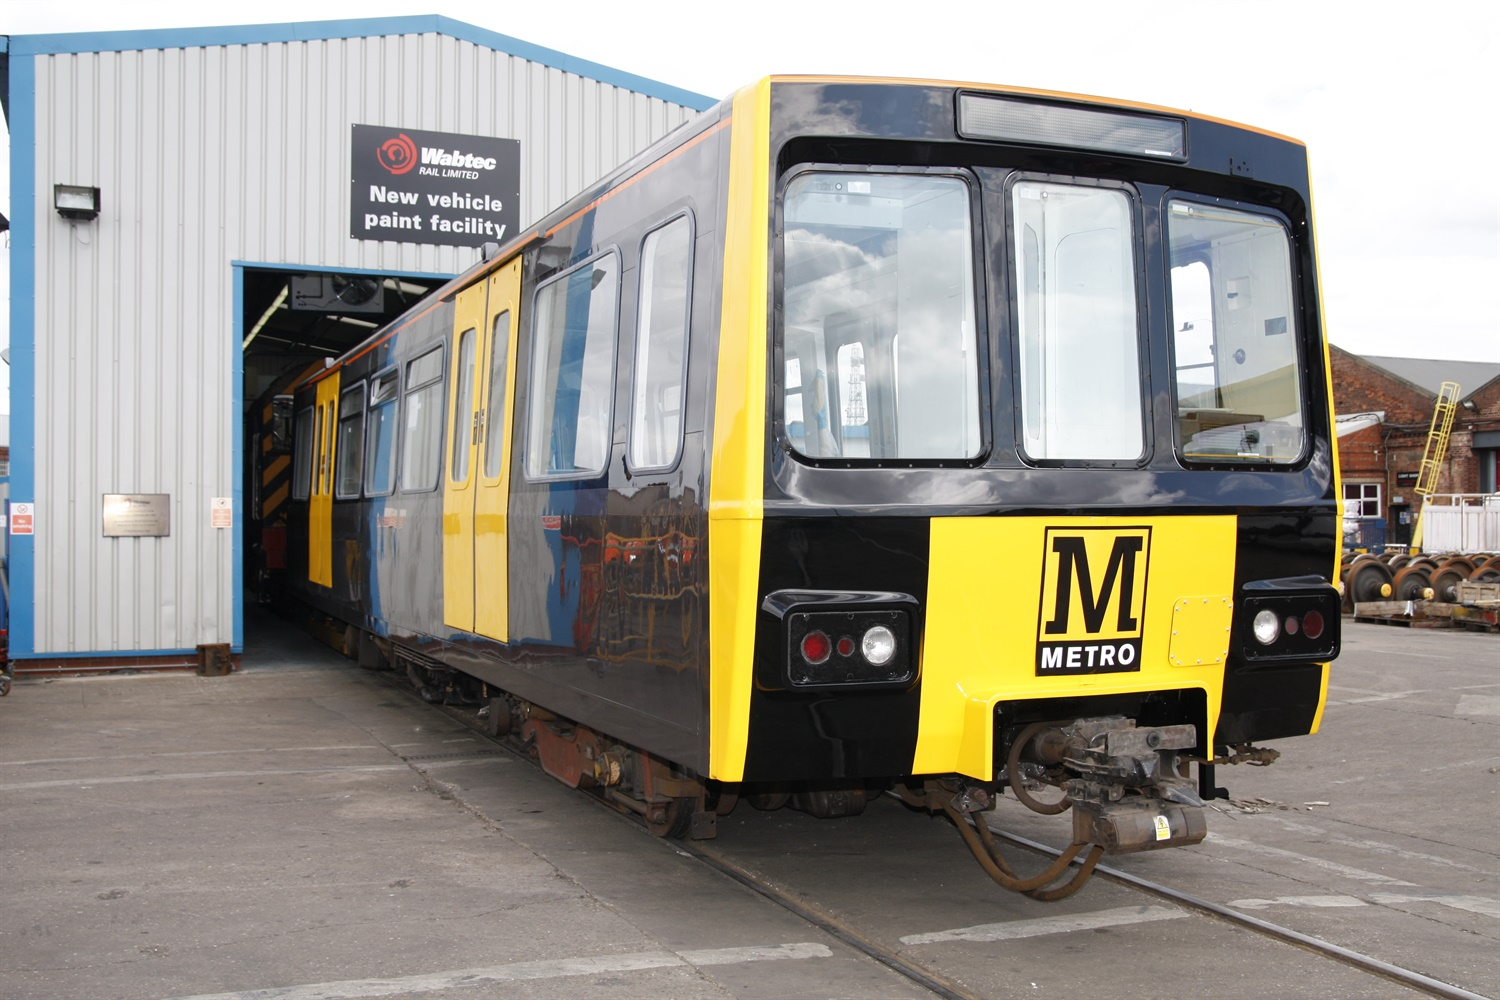 Government cuts Tyne and Wear Metro modernisation funding by £33m